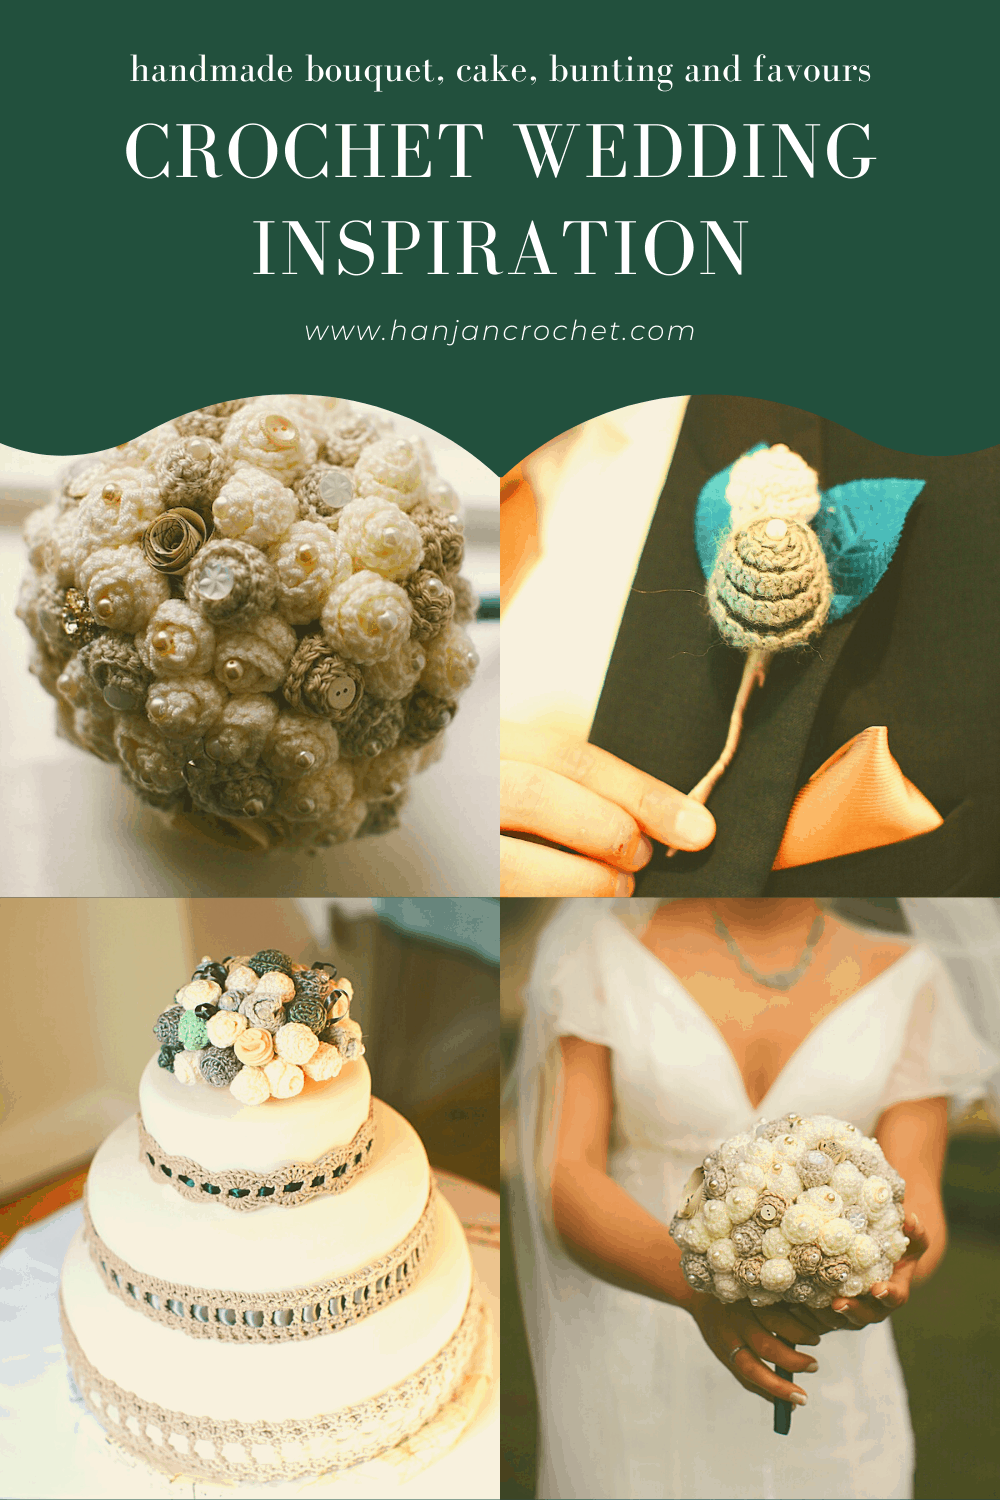 Crochet wedding inspiration for your handmade bouquet, cake, favours, buttonholes and more.